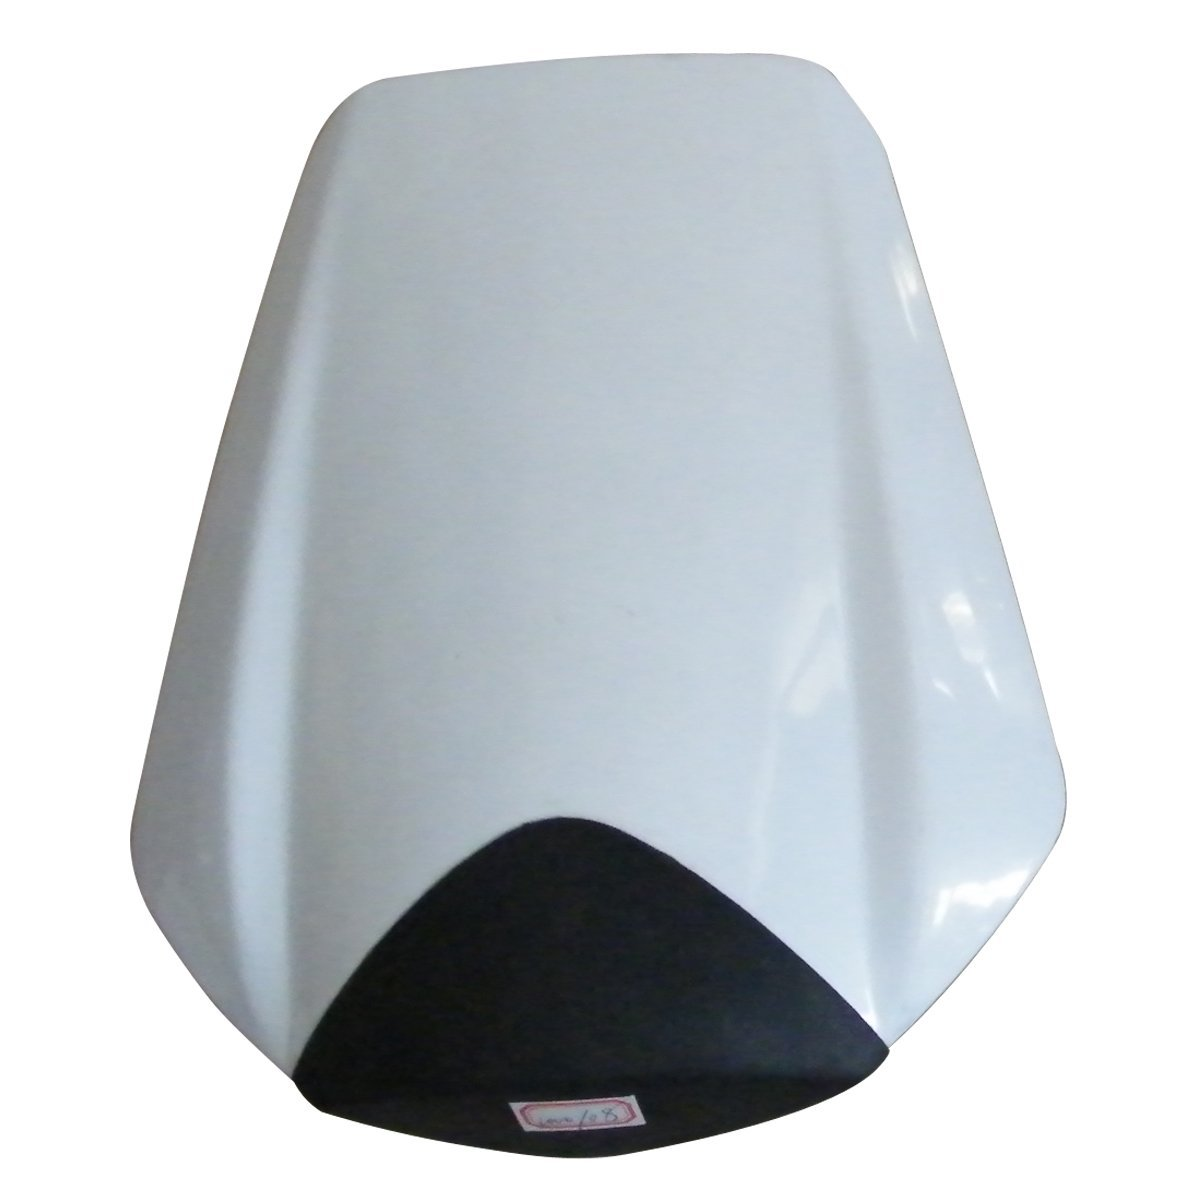 Unpainted Solo Seat Cowl Fairing Rear Seat Cover For Honda CBR 1000RR CBR1000RR 2008 2009 2010 2011 CBR 1000RR 08 - 11 Motorbike car rear trunk security shield shade cargo cover for nissan qashqai 2008 2009 2010 2011 2012 2013 black beige